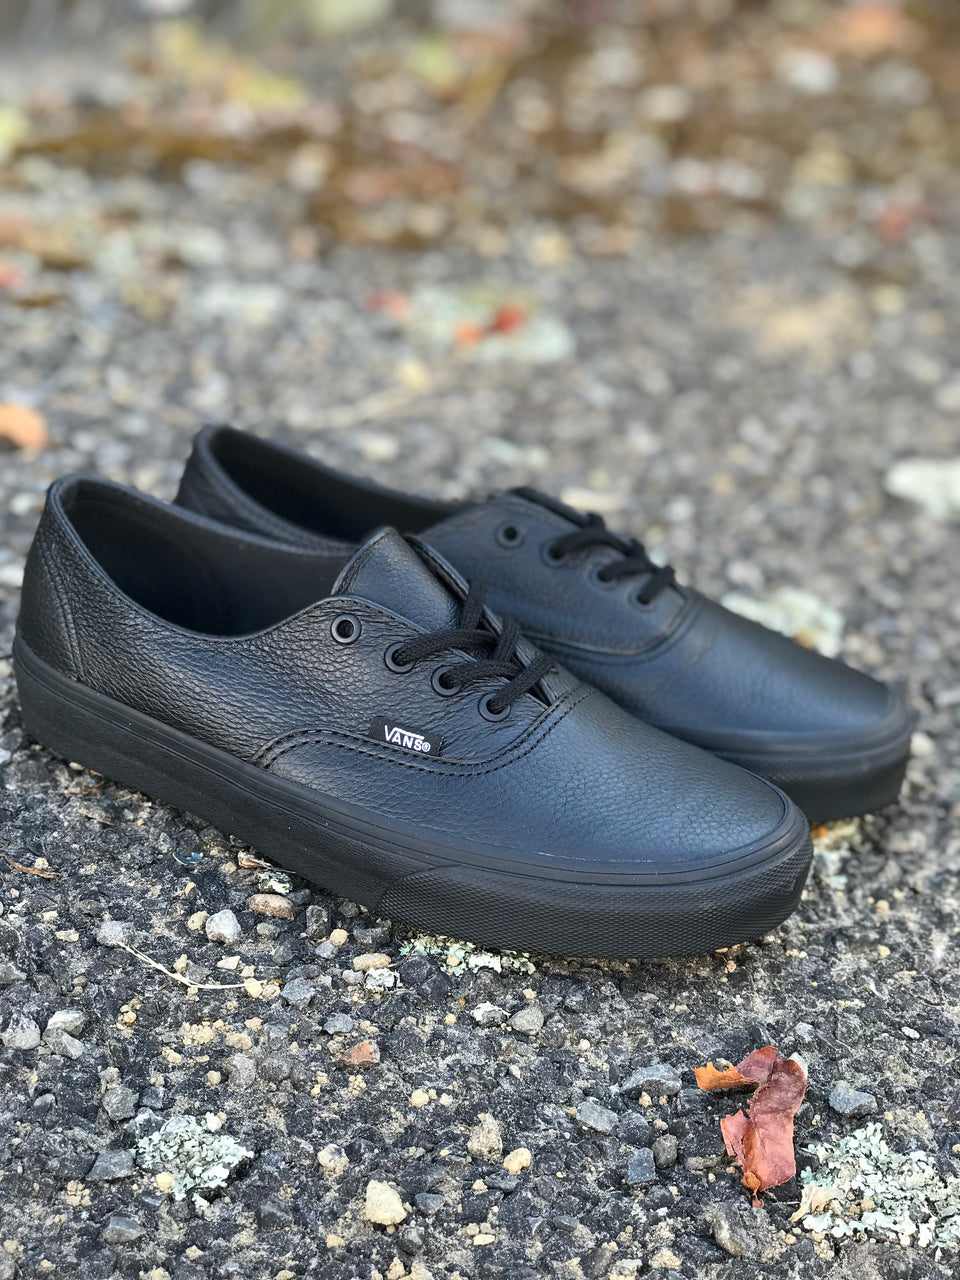 Vans Authentic Decon (Classic Tumble) - Black/Black